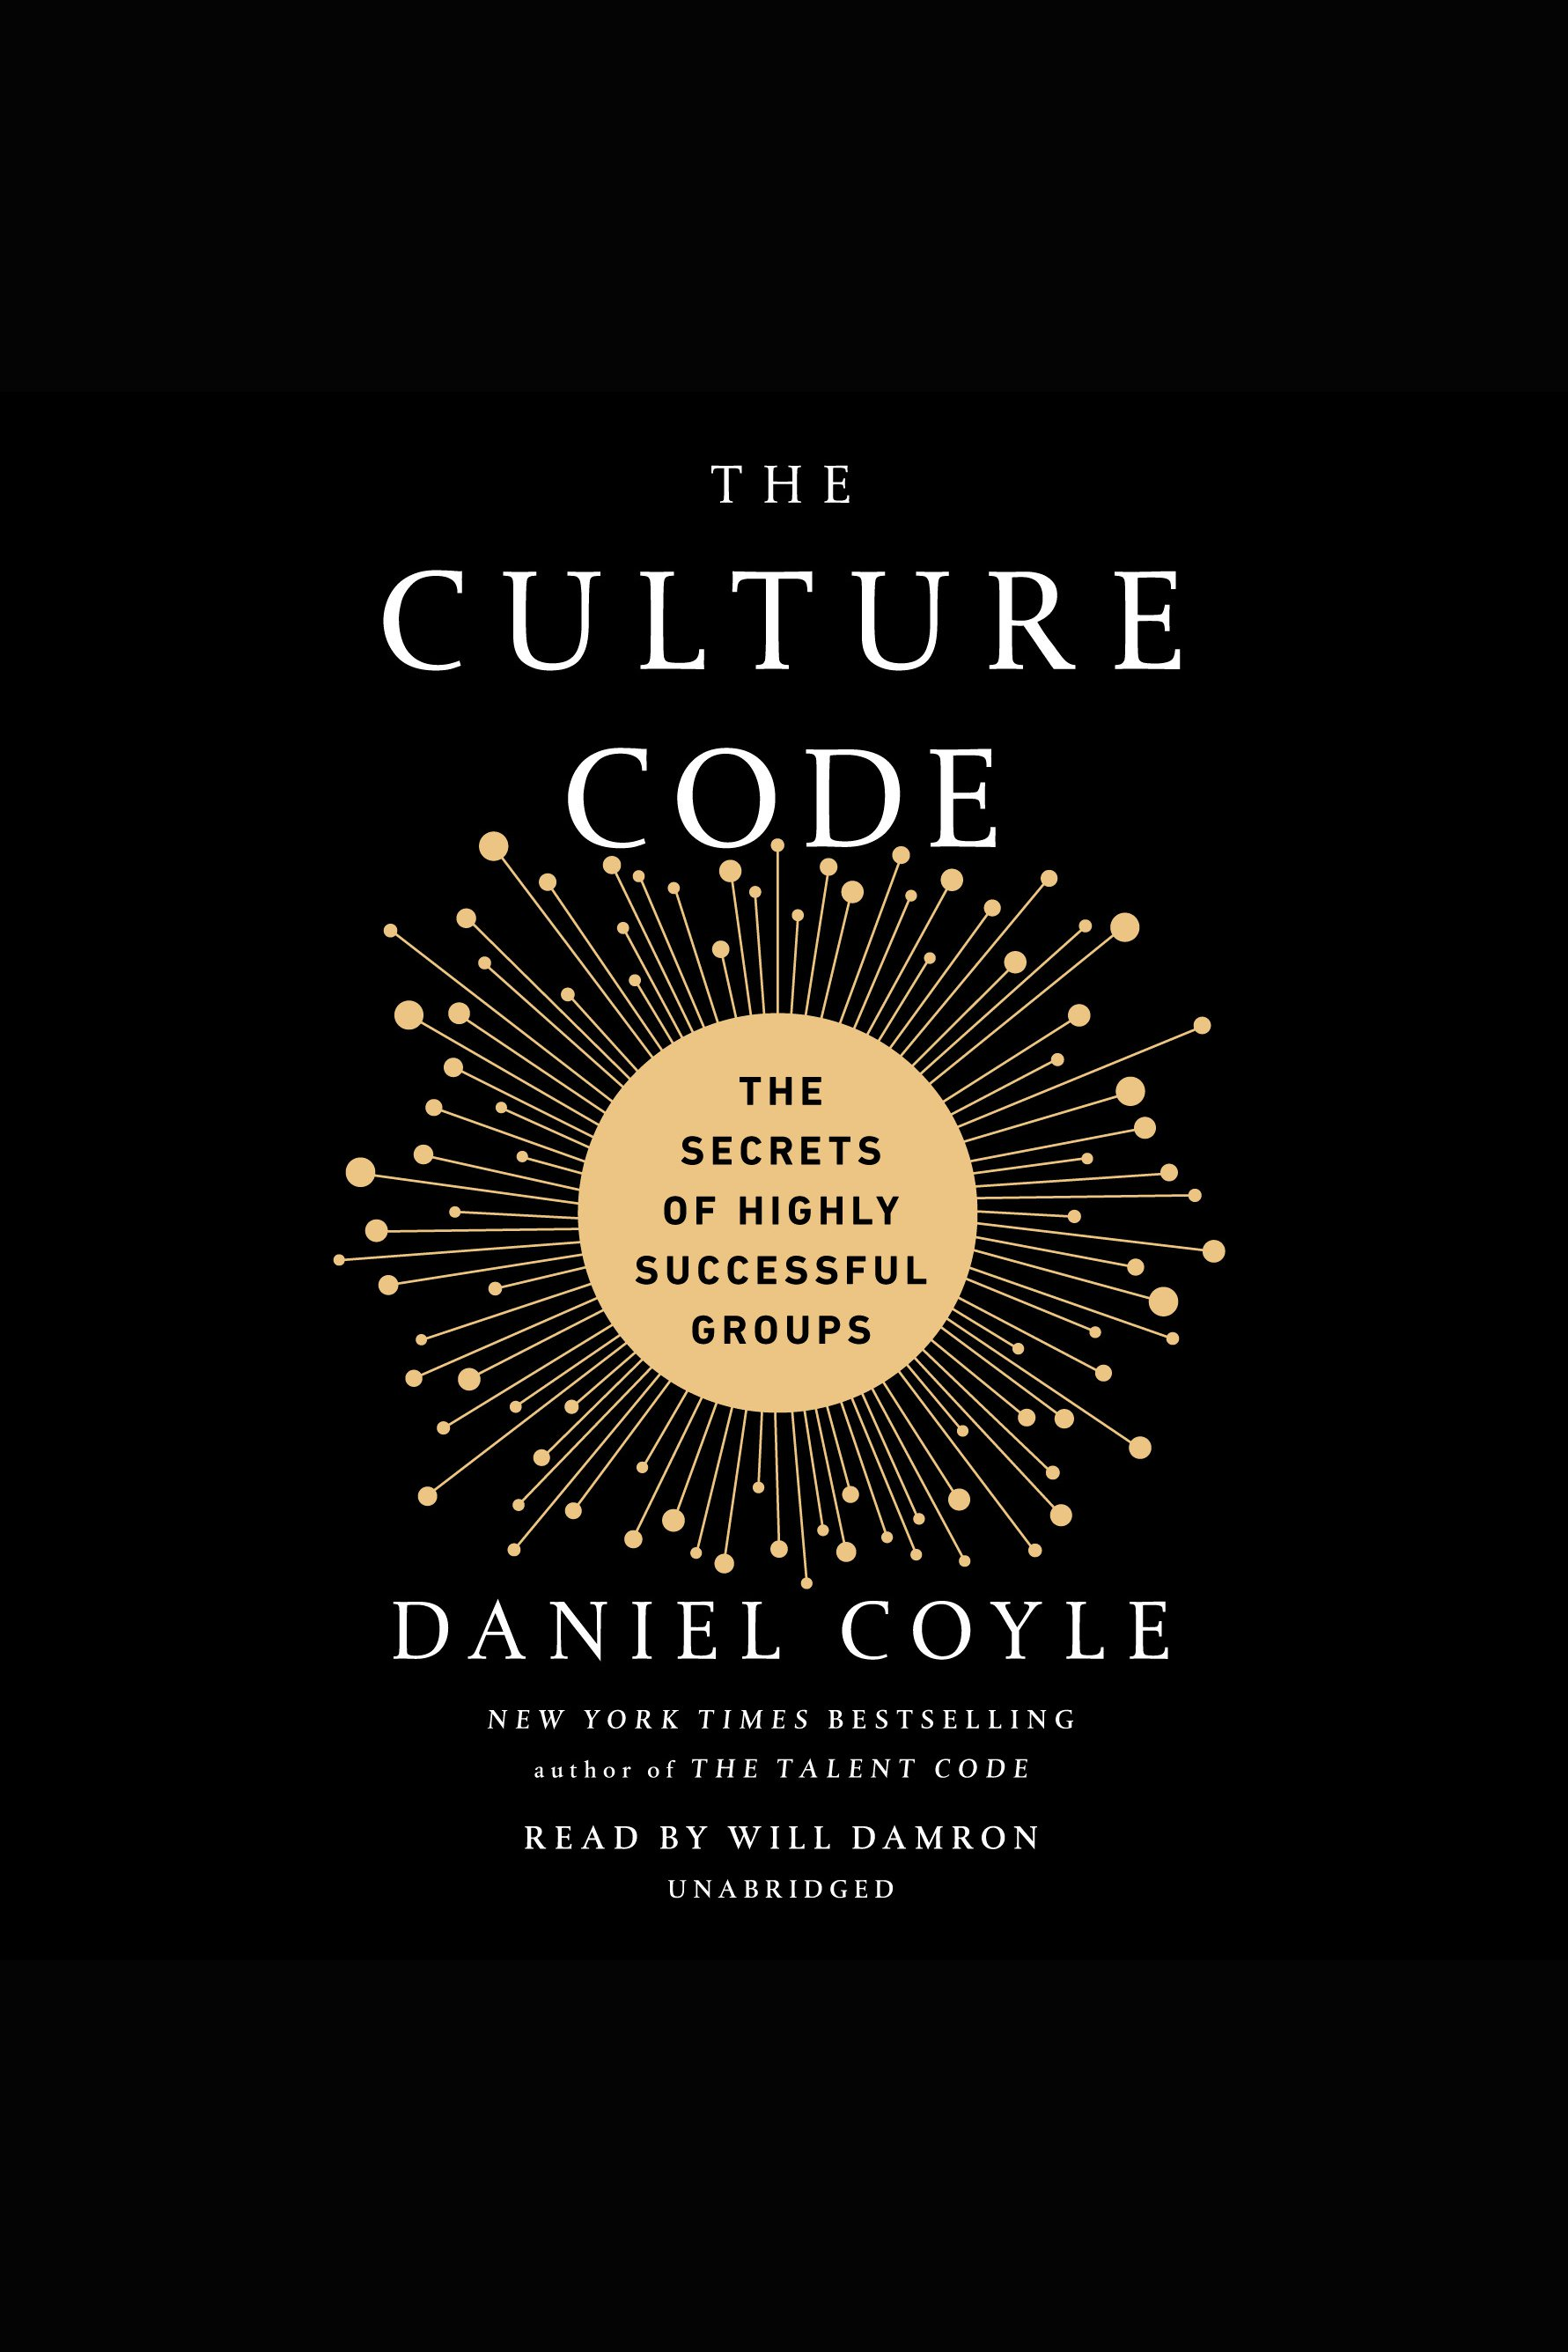 The Culture Code:The Secrets of Highly Successful Groups